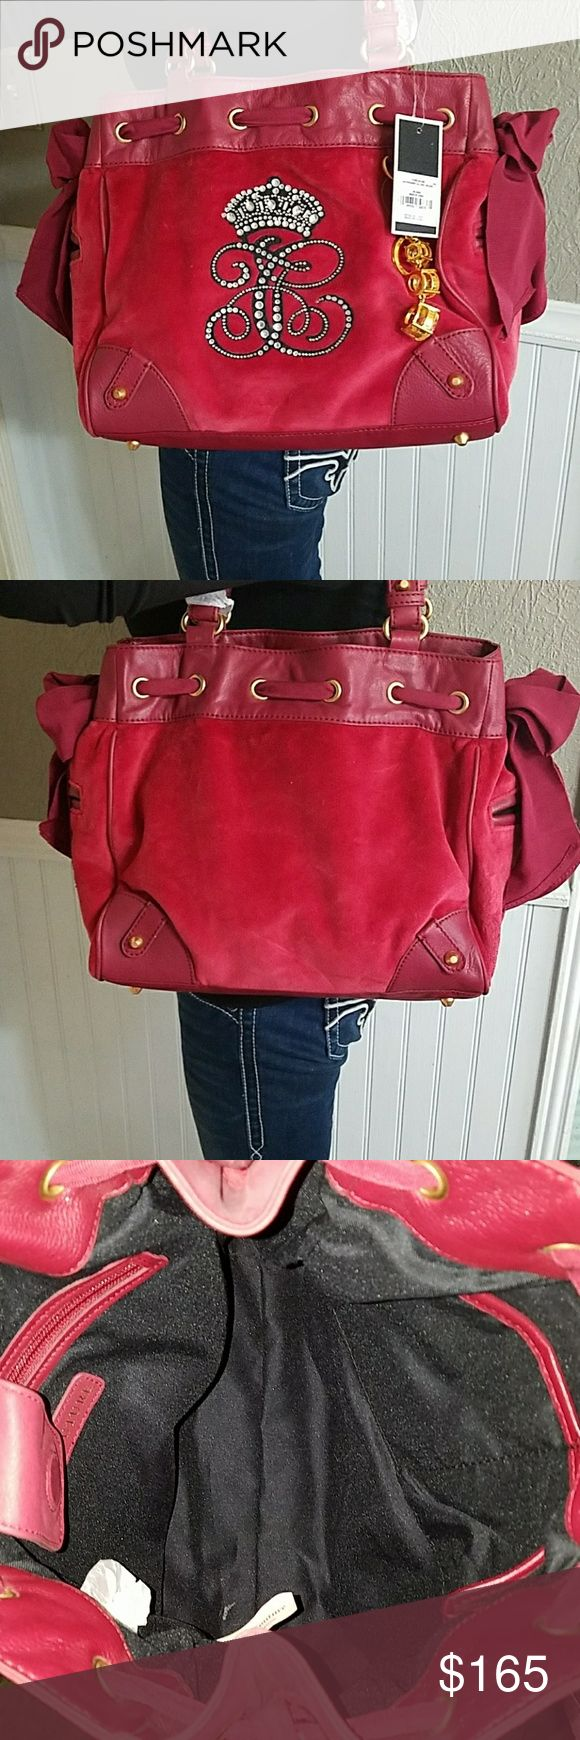 """NWT- Juicy Couture shoulder bag Beautiful Juicy Couture leather and valore bag! Height 11"""" Width 12 1/2"""" Shoulder drop 8"""" Juicy Couture Bags Shoulder Bags"""